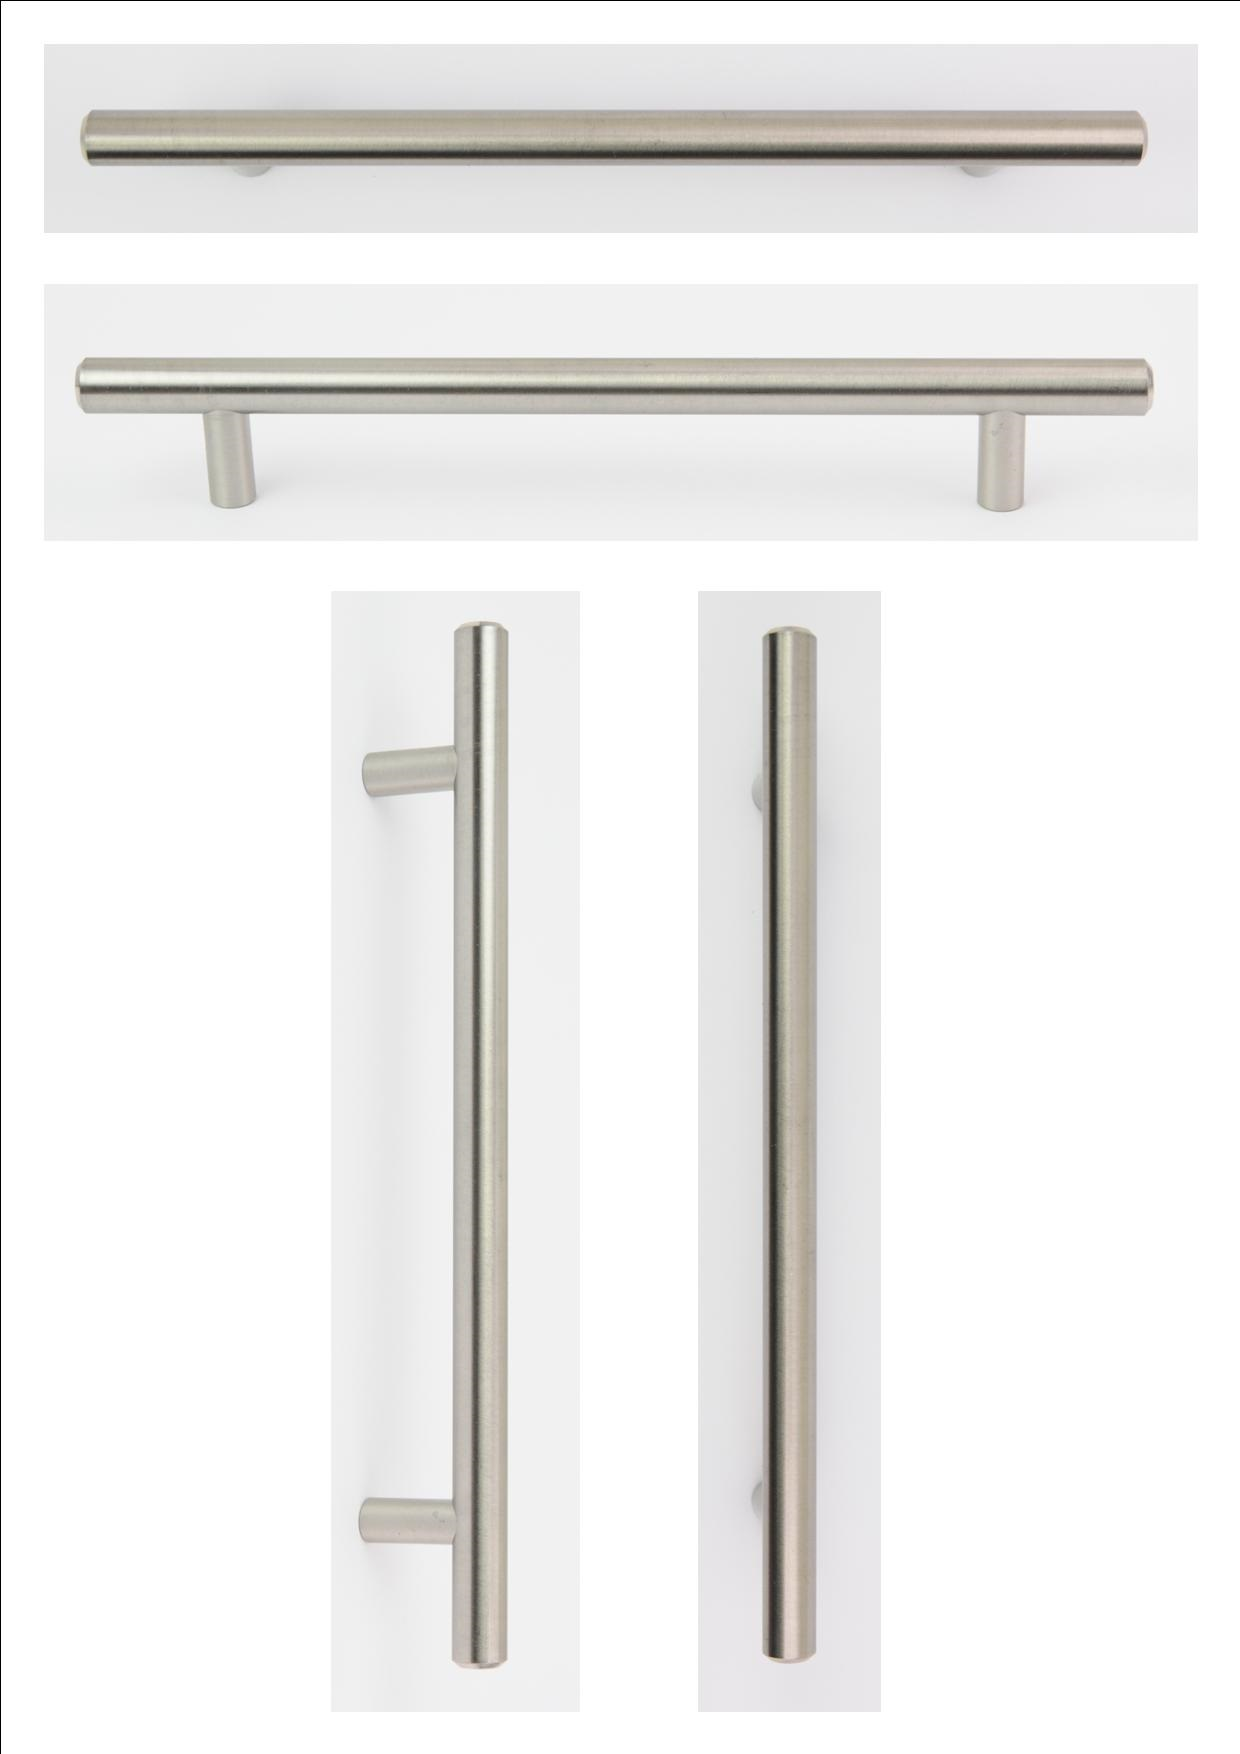 STEEL  T BAR HANDLE 220MM (160MM CENTRES) - OLD CODE HS01